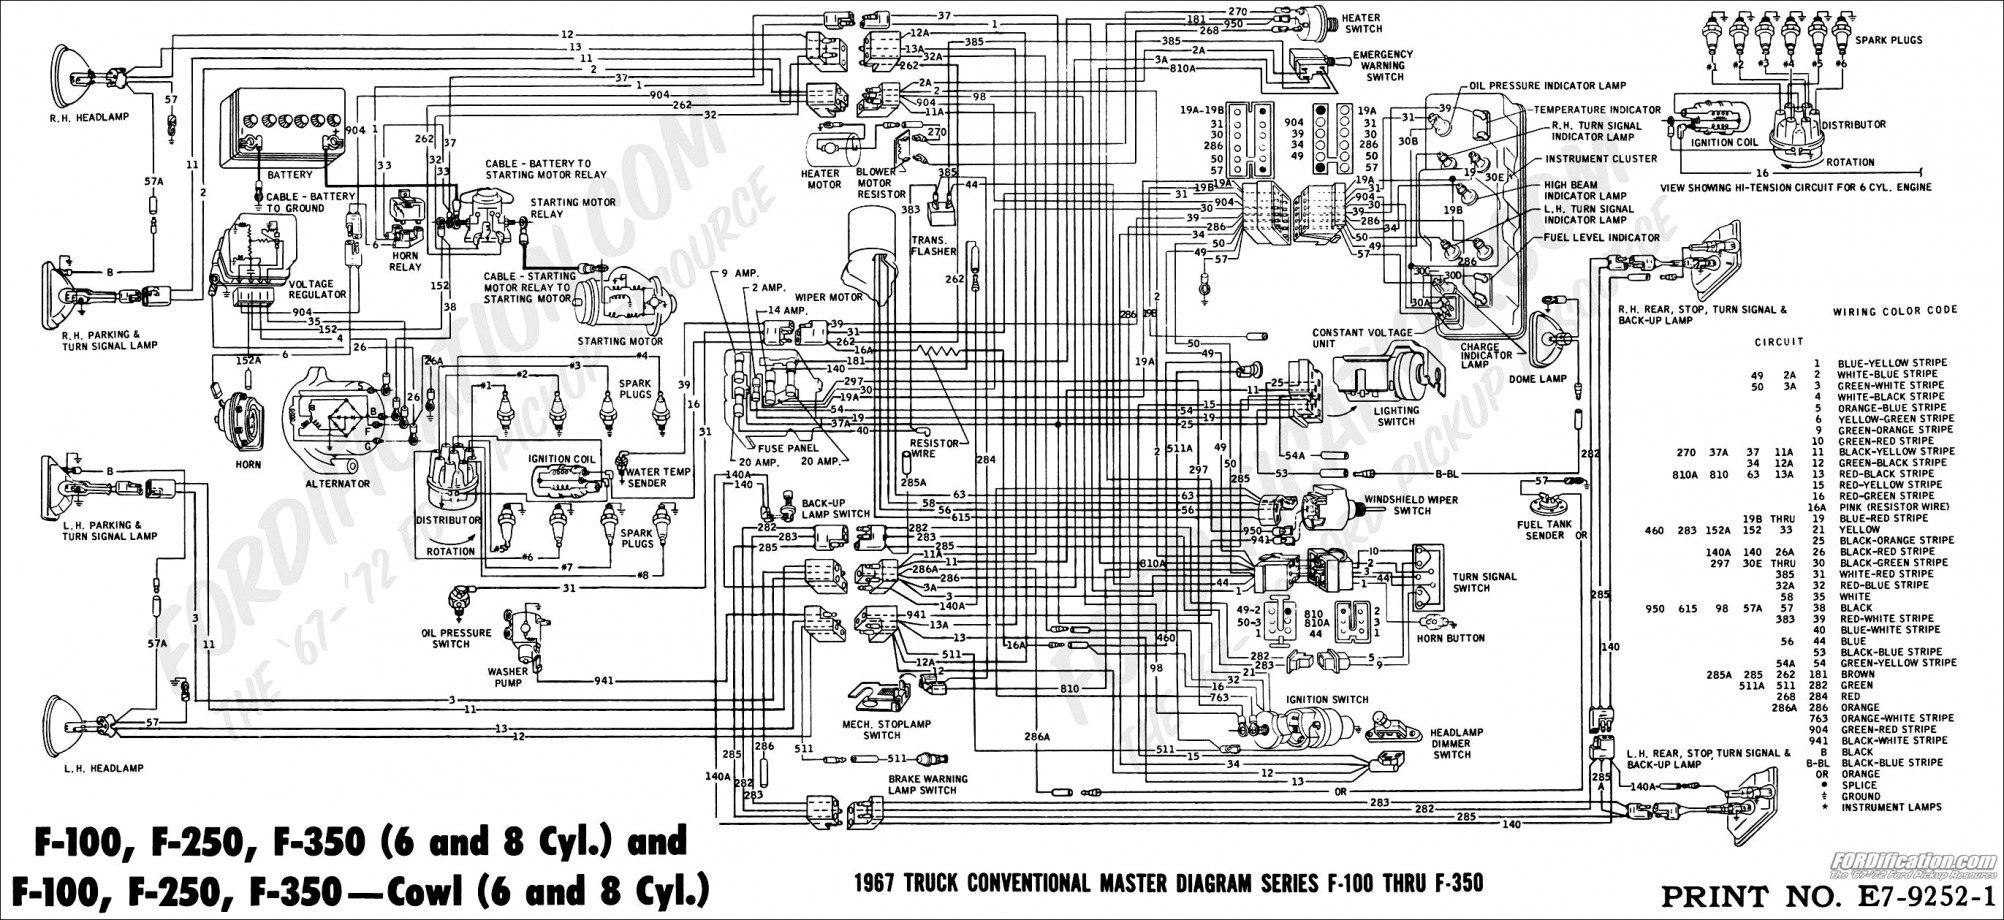 Ford Wiring Diagrams - Wiring Diagrams Click - 2013 F 150 7 Pin Trailer Wiring Diagram